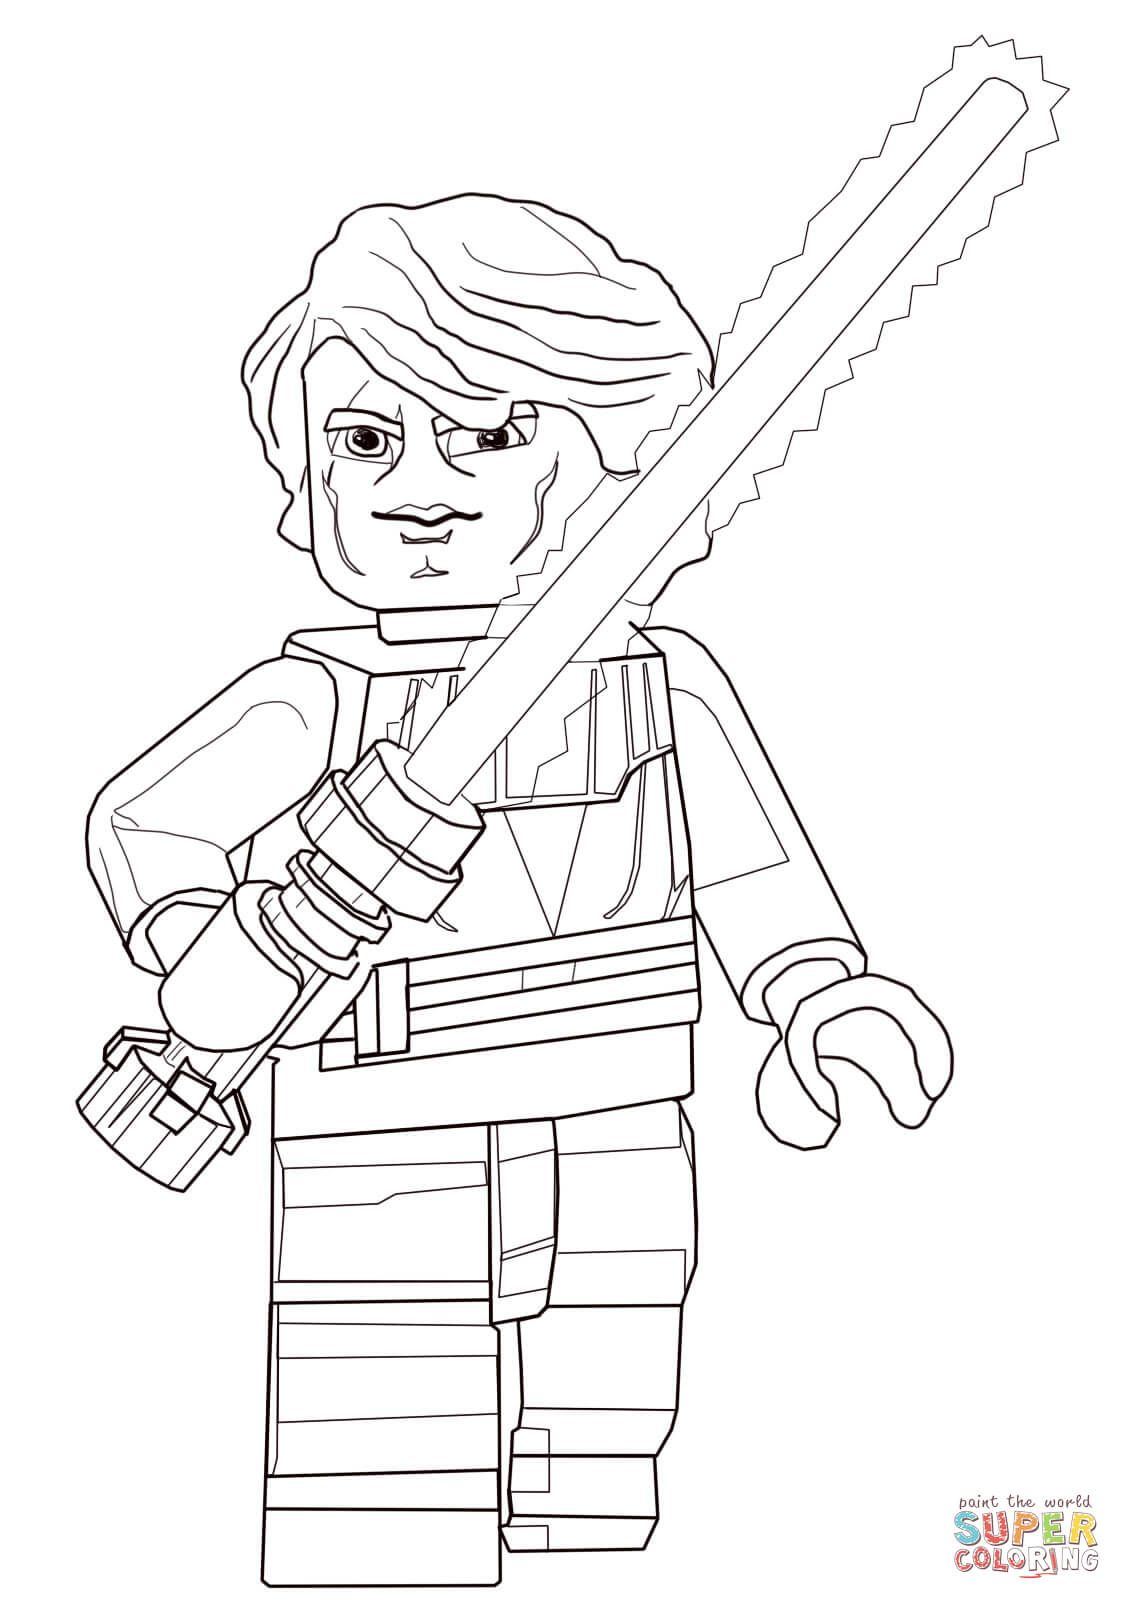 Lego Star Wars Anakin Skywalker | Super Coloring | LineArt: Star ...